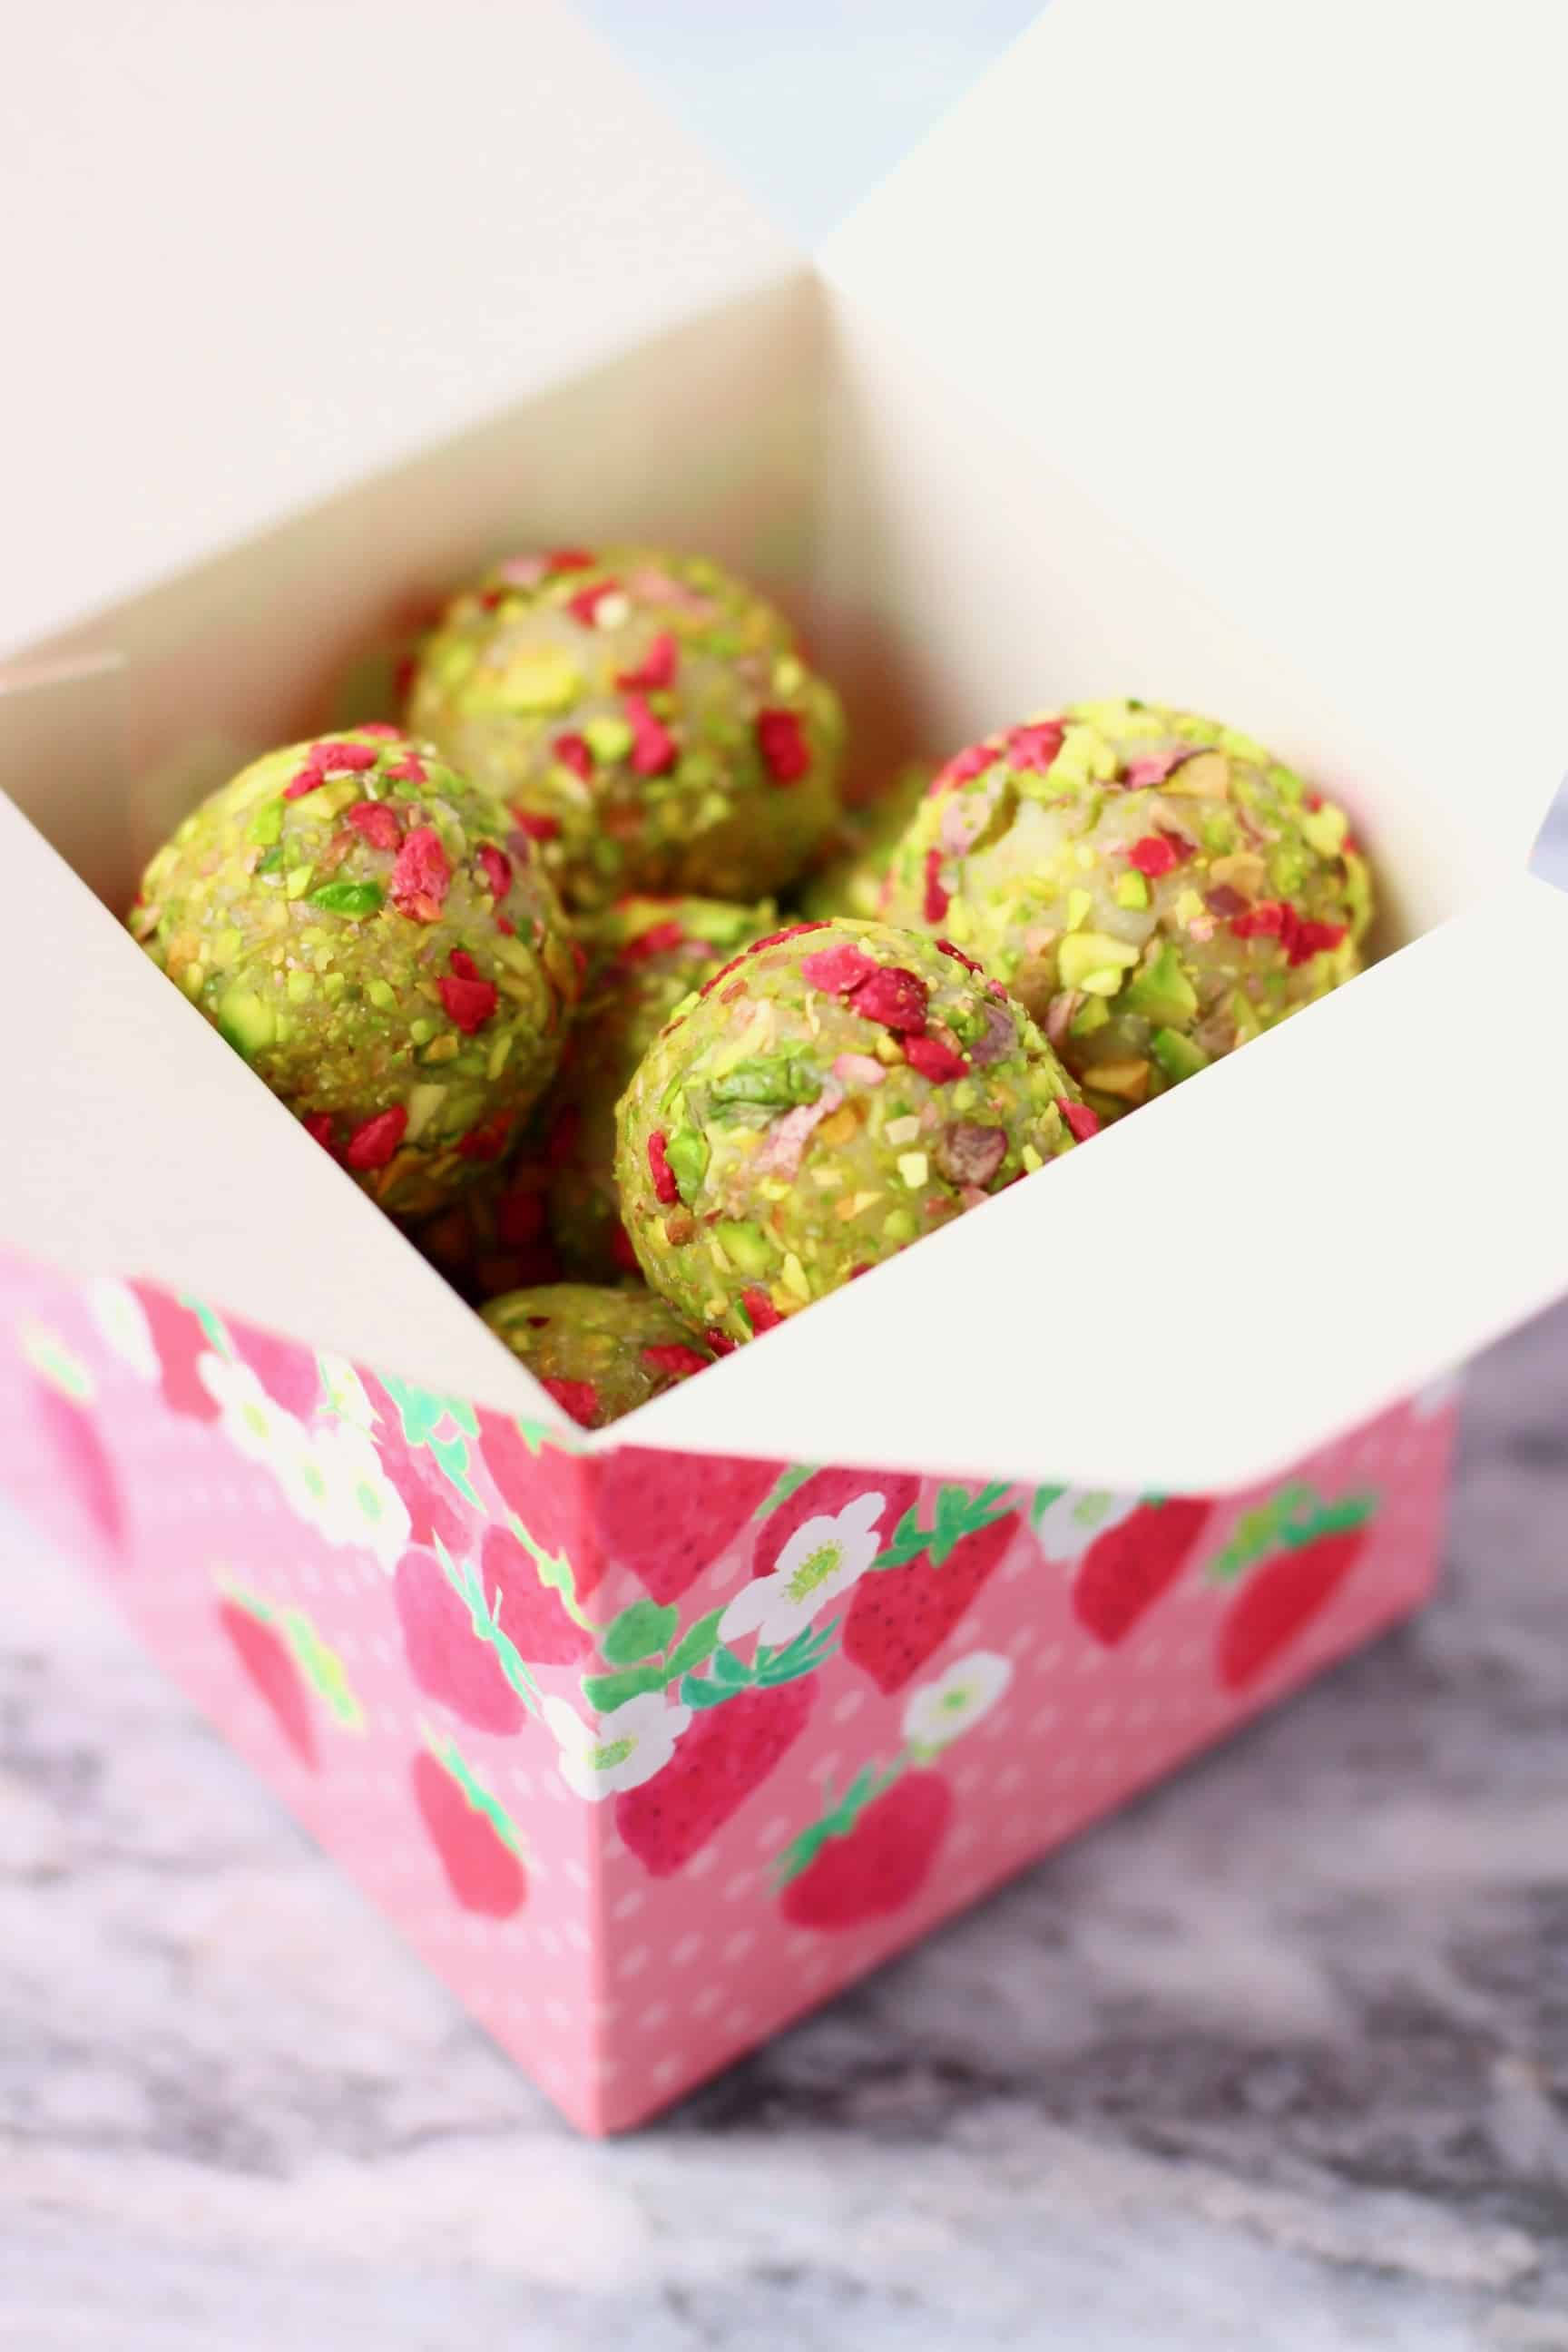 Vegan white chocolate truffles covered with chopped pistachios and freeze-dried raspberries in a small pink gift box